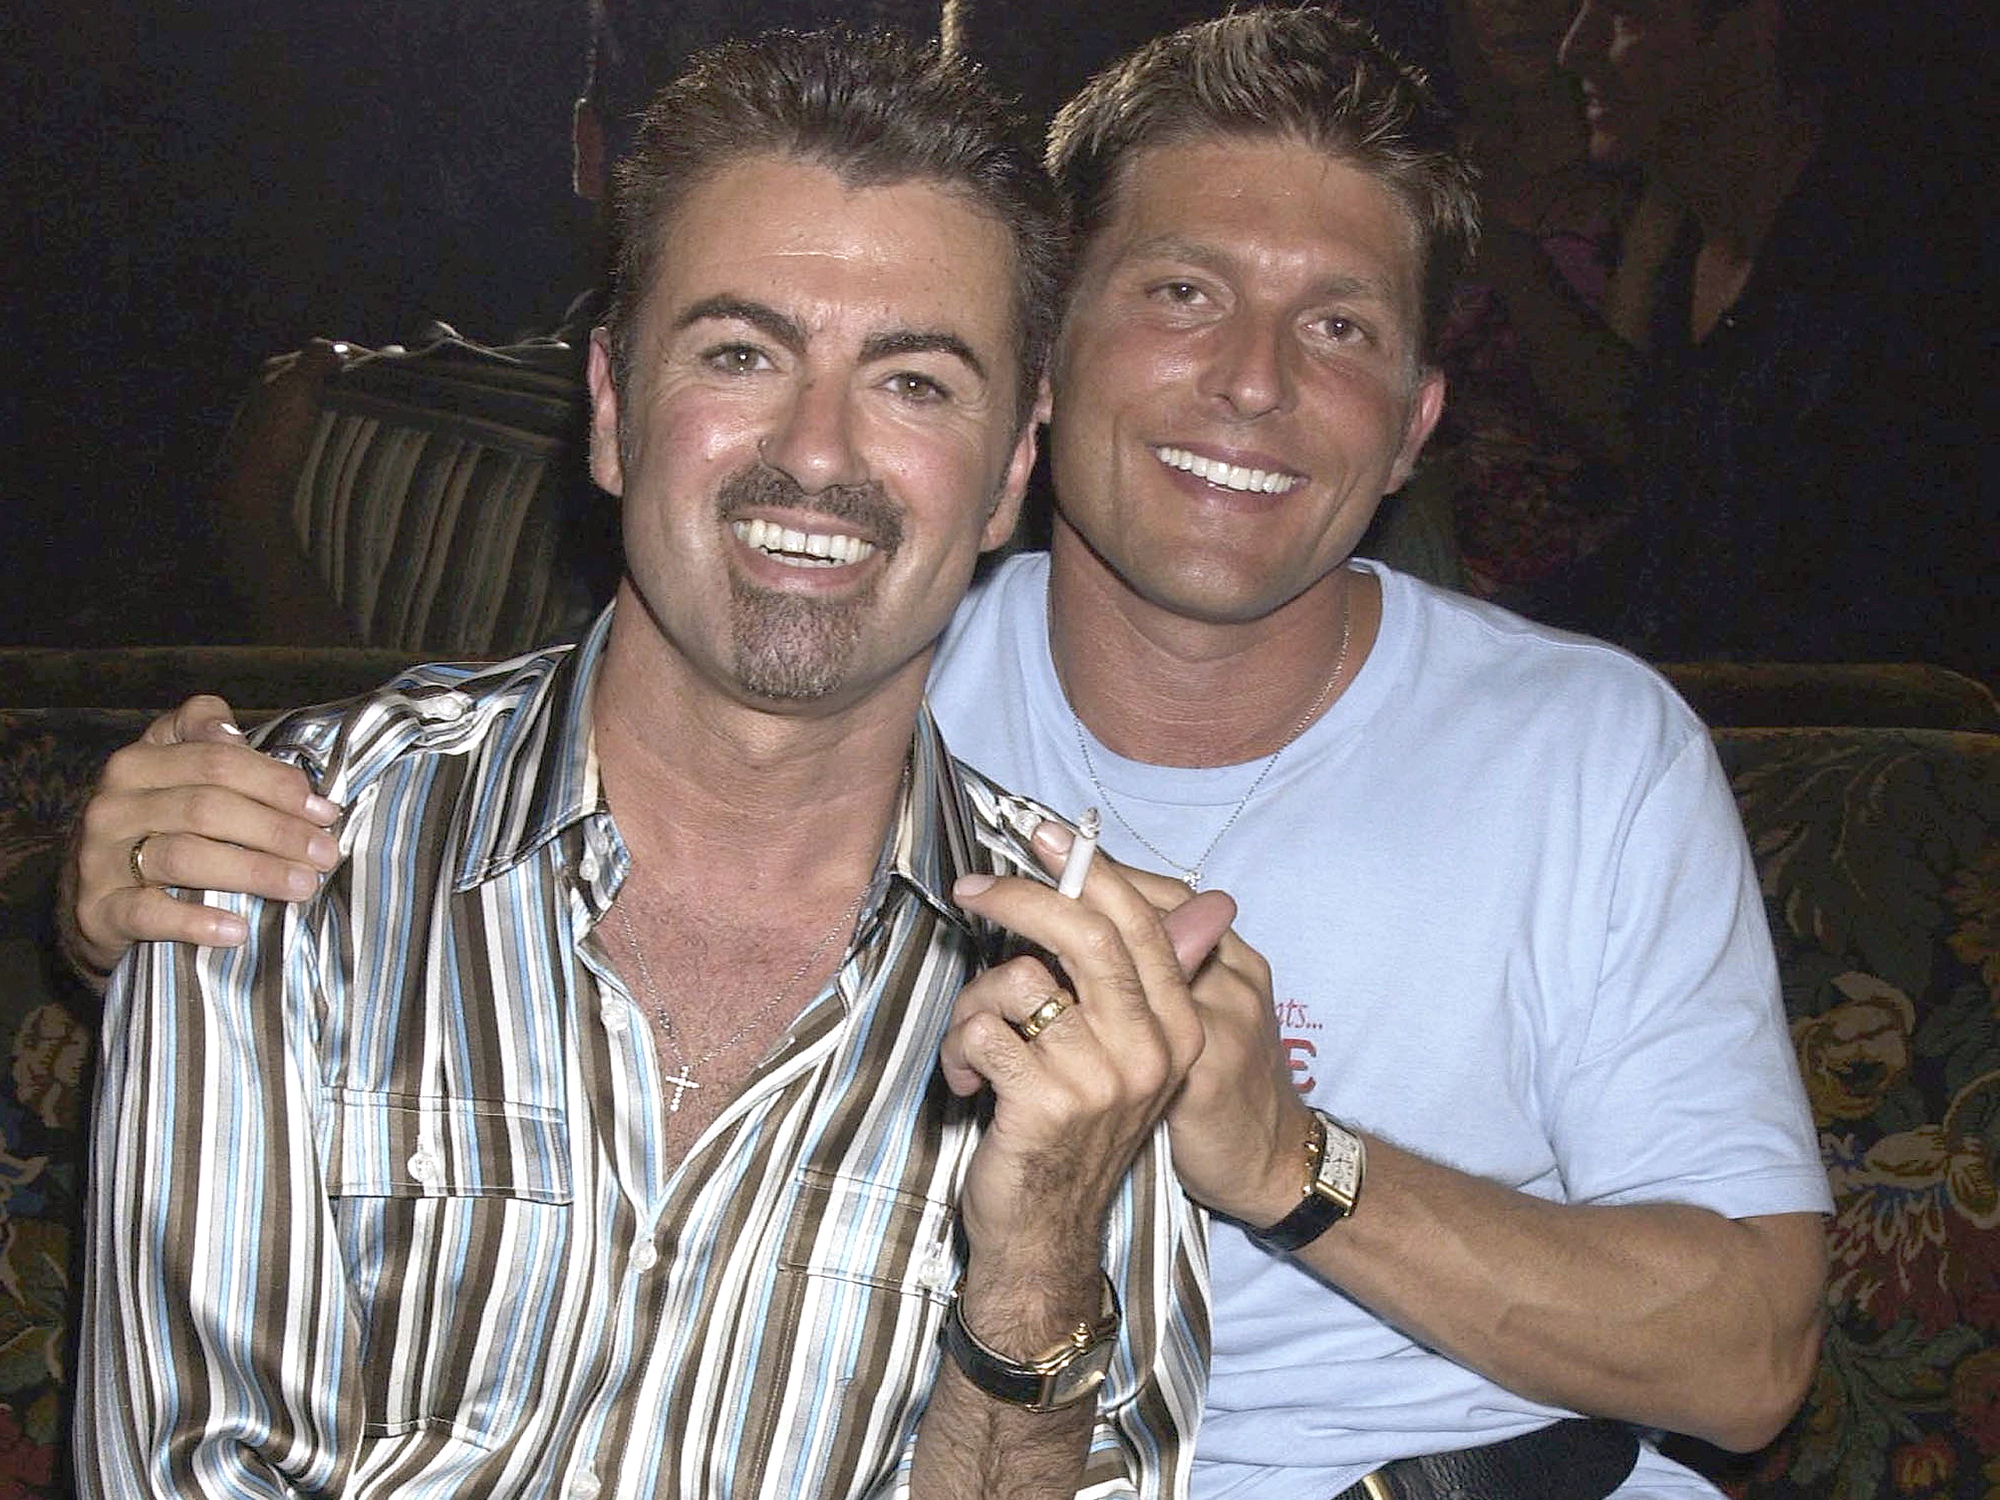 PARIS - JULY 09: Singer, George Michael and partner Kenny Goss attend the Versace Couture Launch Party, thrown by Donatella Versace at The Ritz Hotel on 9th July 2002, in Paris. (Photo by Dave Benett/Getty Images).